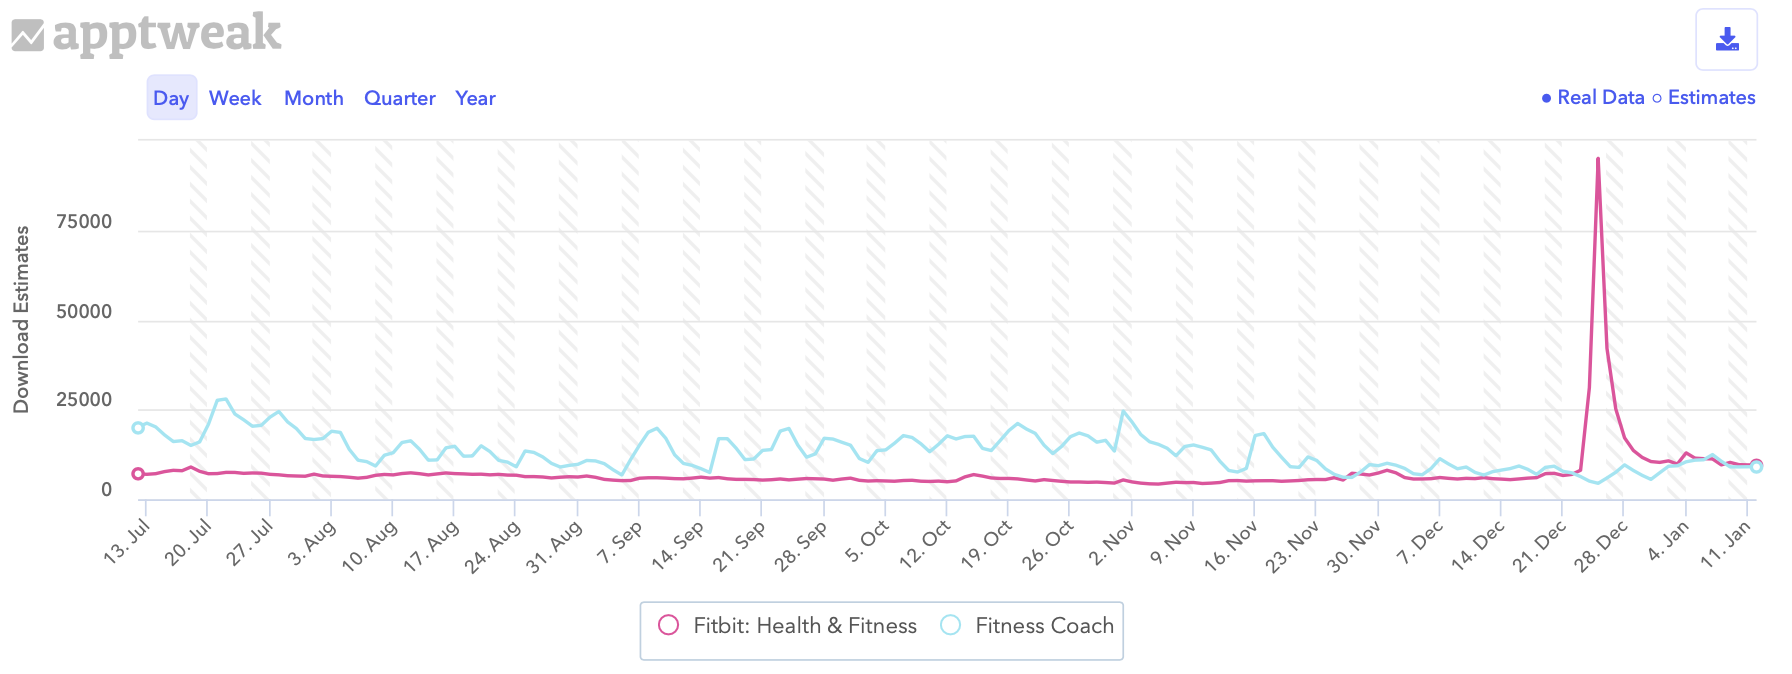 Comparing daily download estimates for Fitbit and Fitness Coach on the Apple App Store in the US.